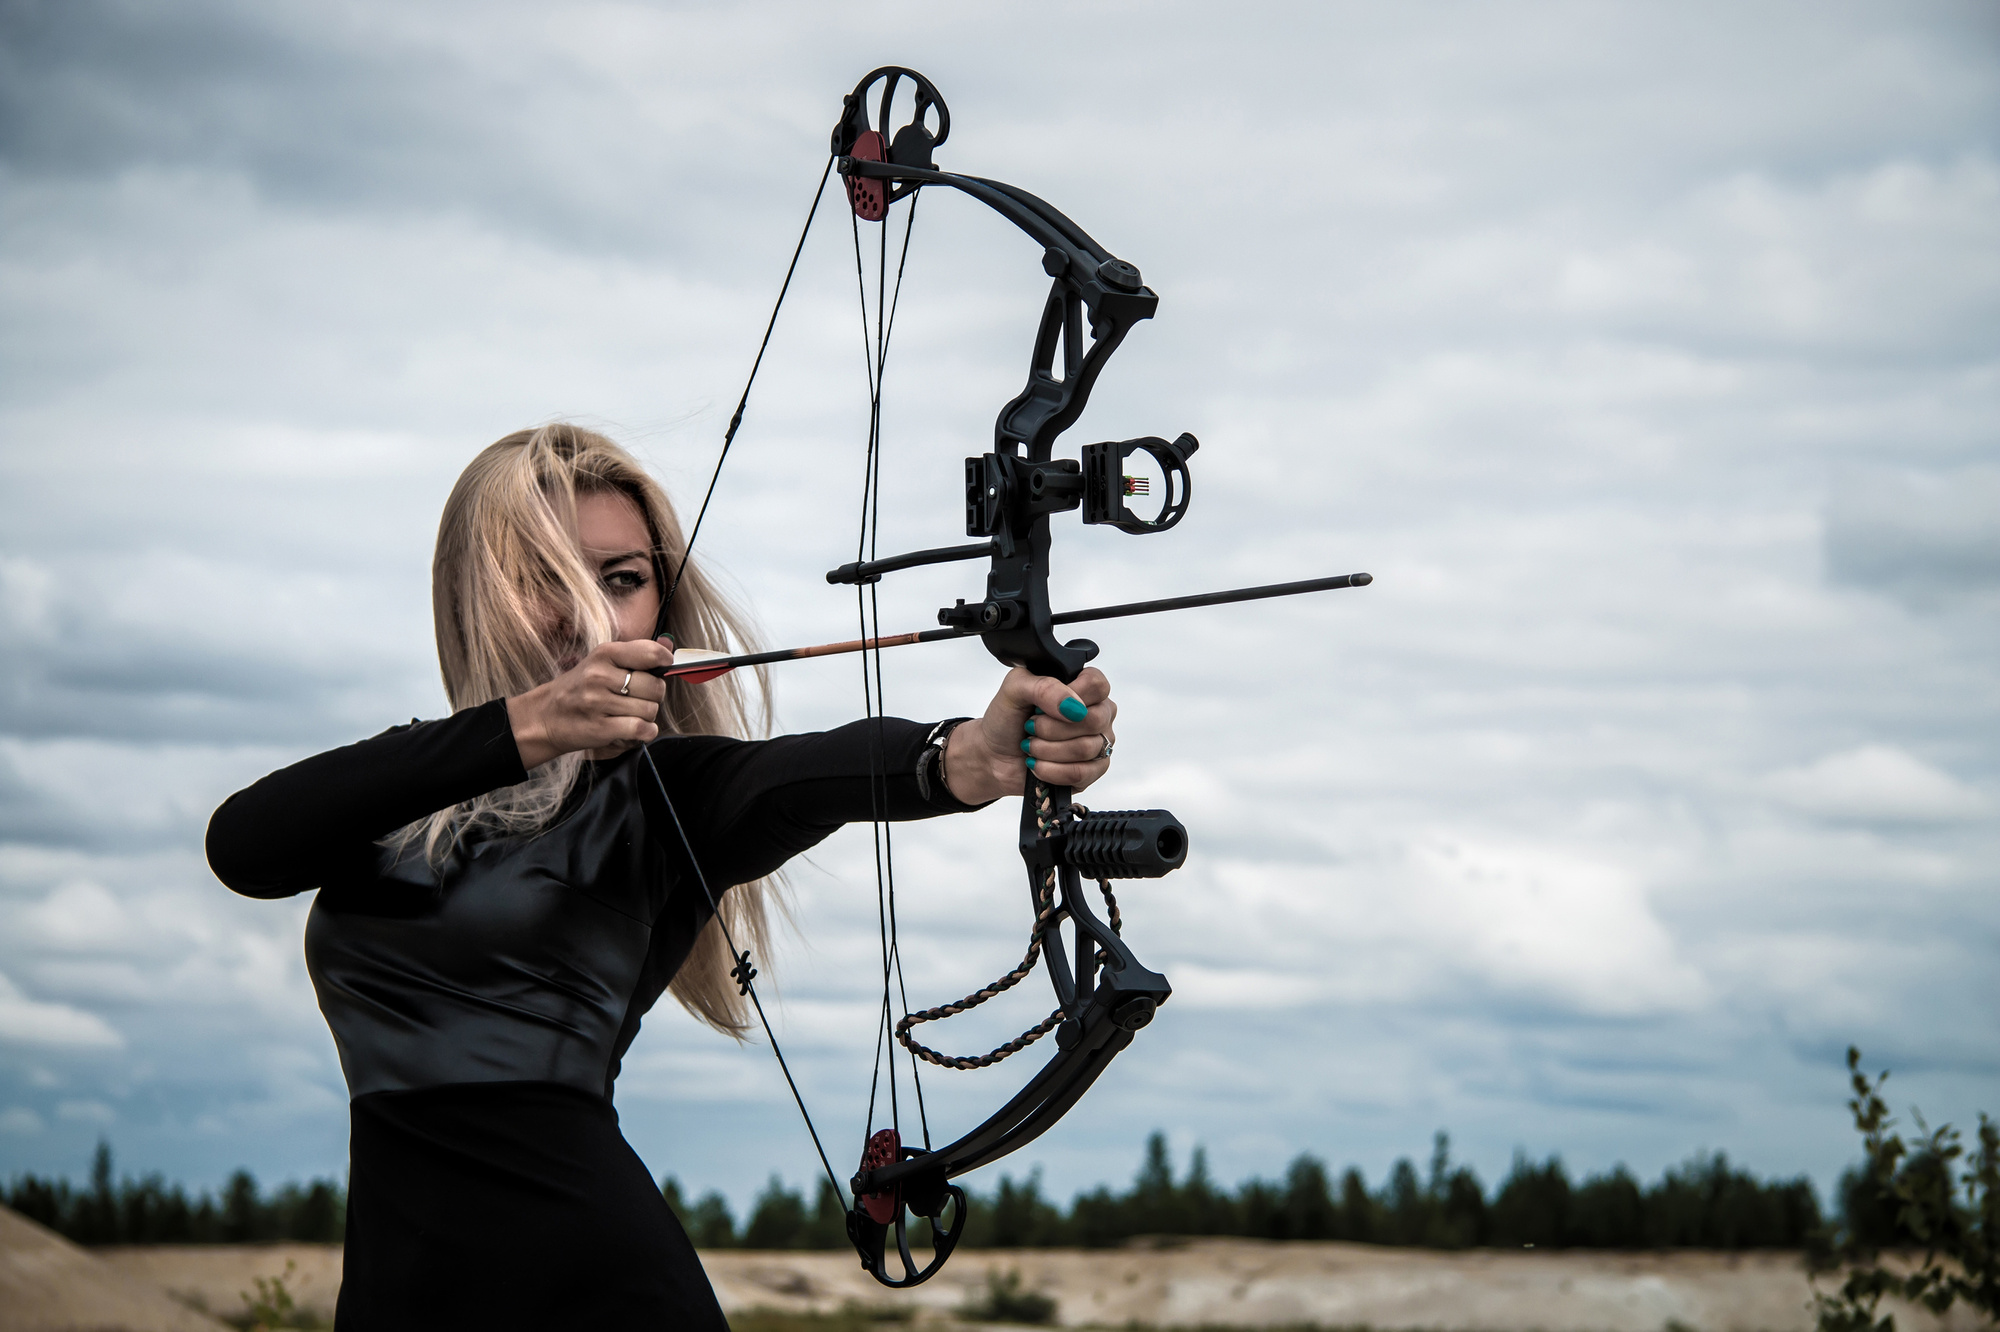 How To Choose Compound Bow Accessories